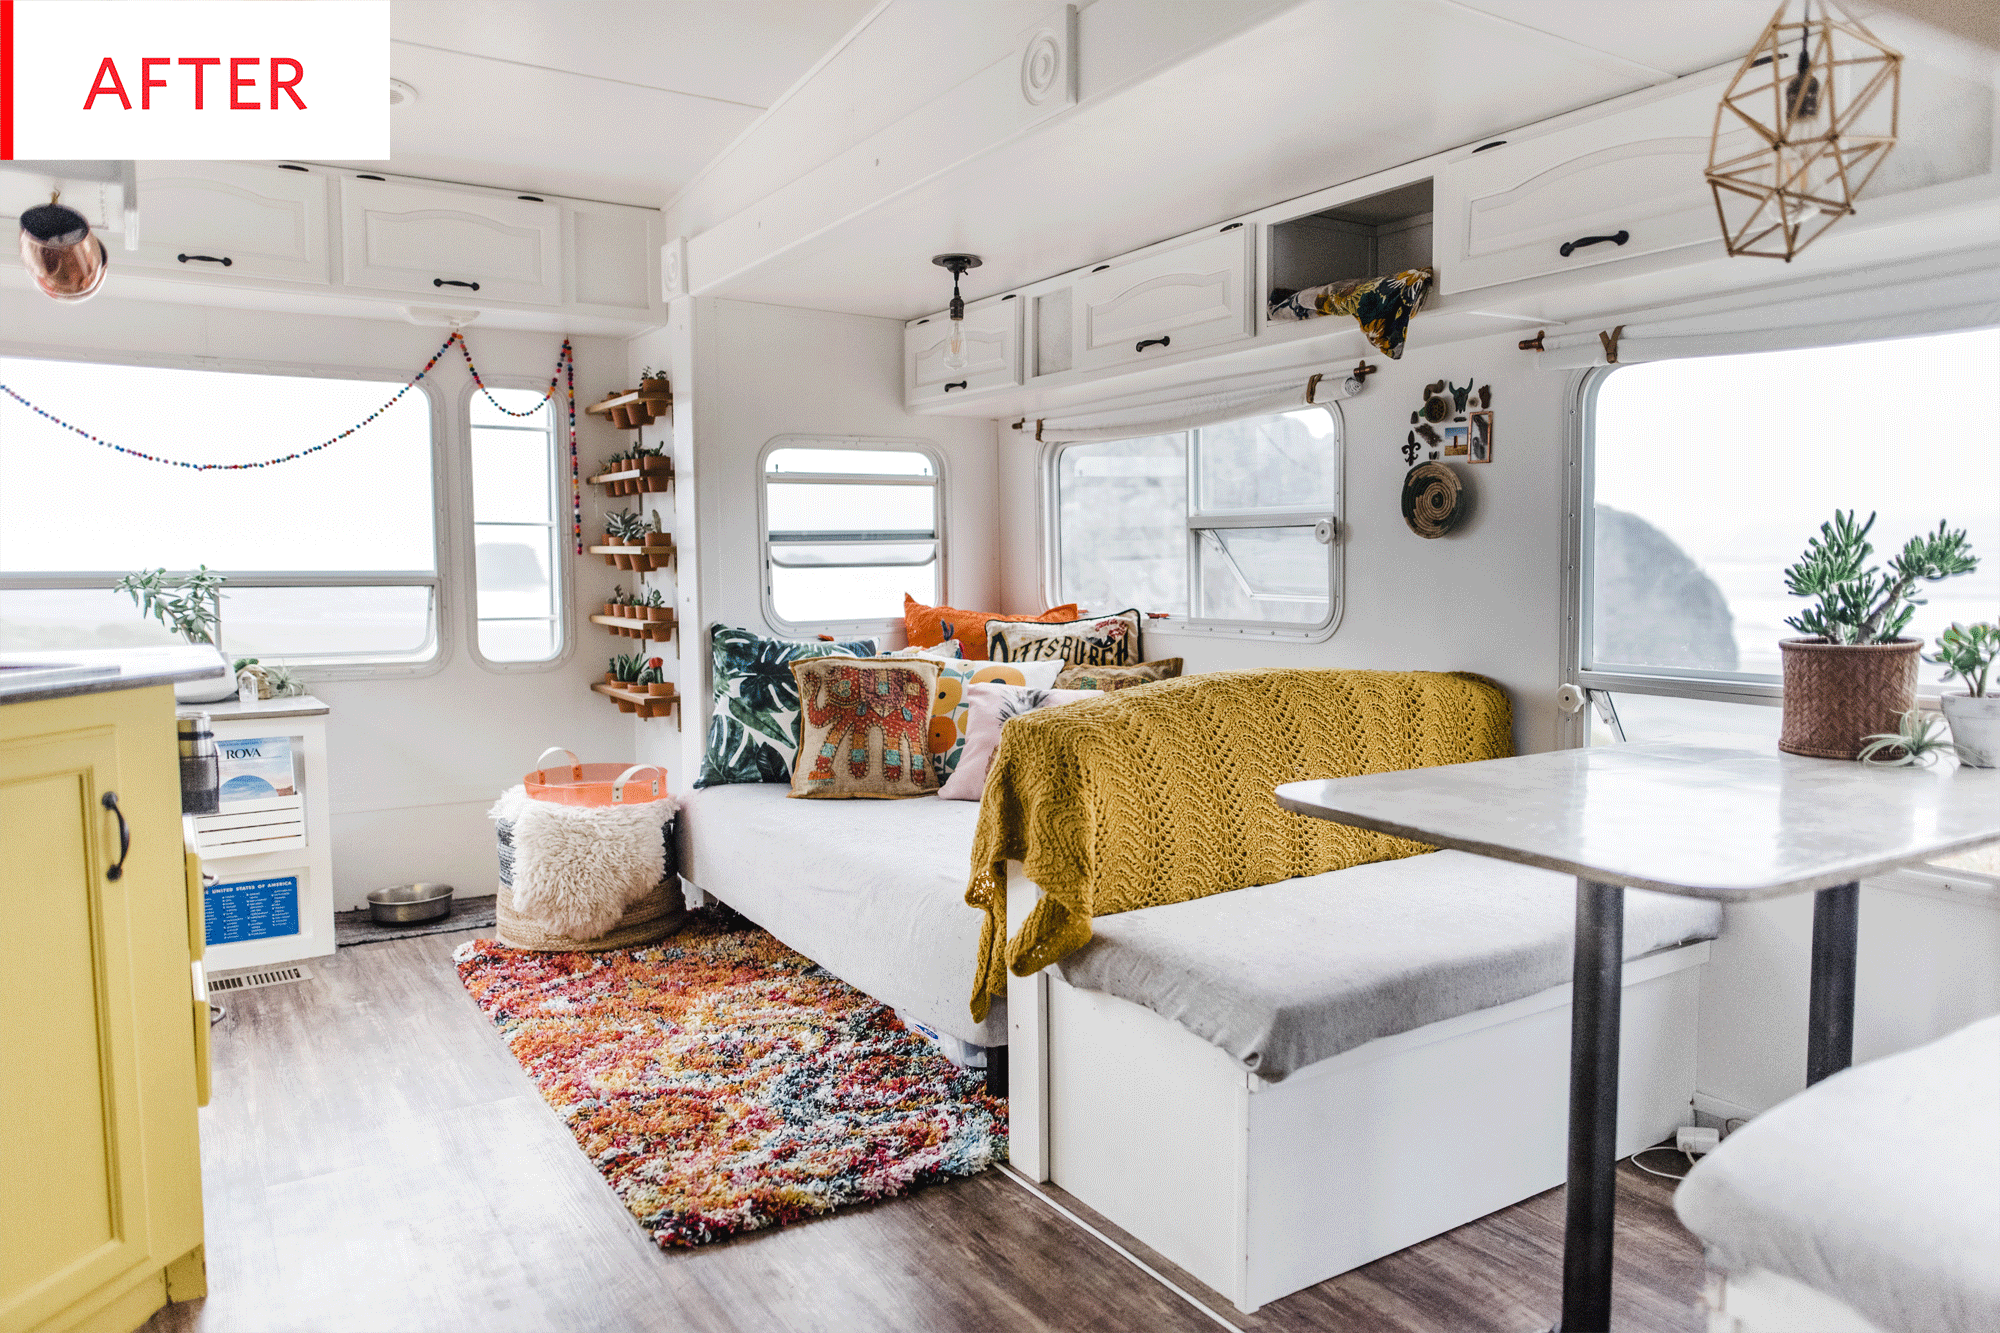 Before After A Tiny Camper S Remarkable Remodel Apartment Therapy